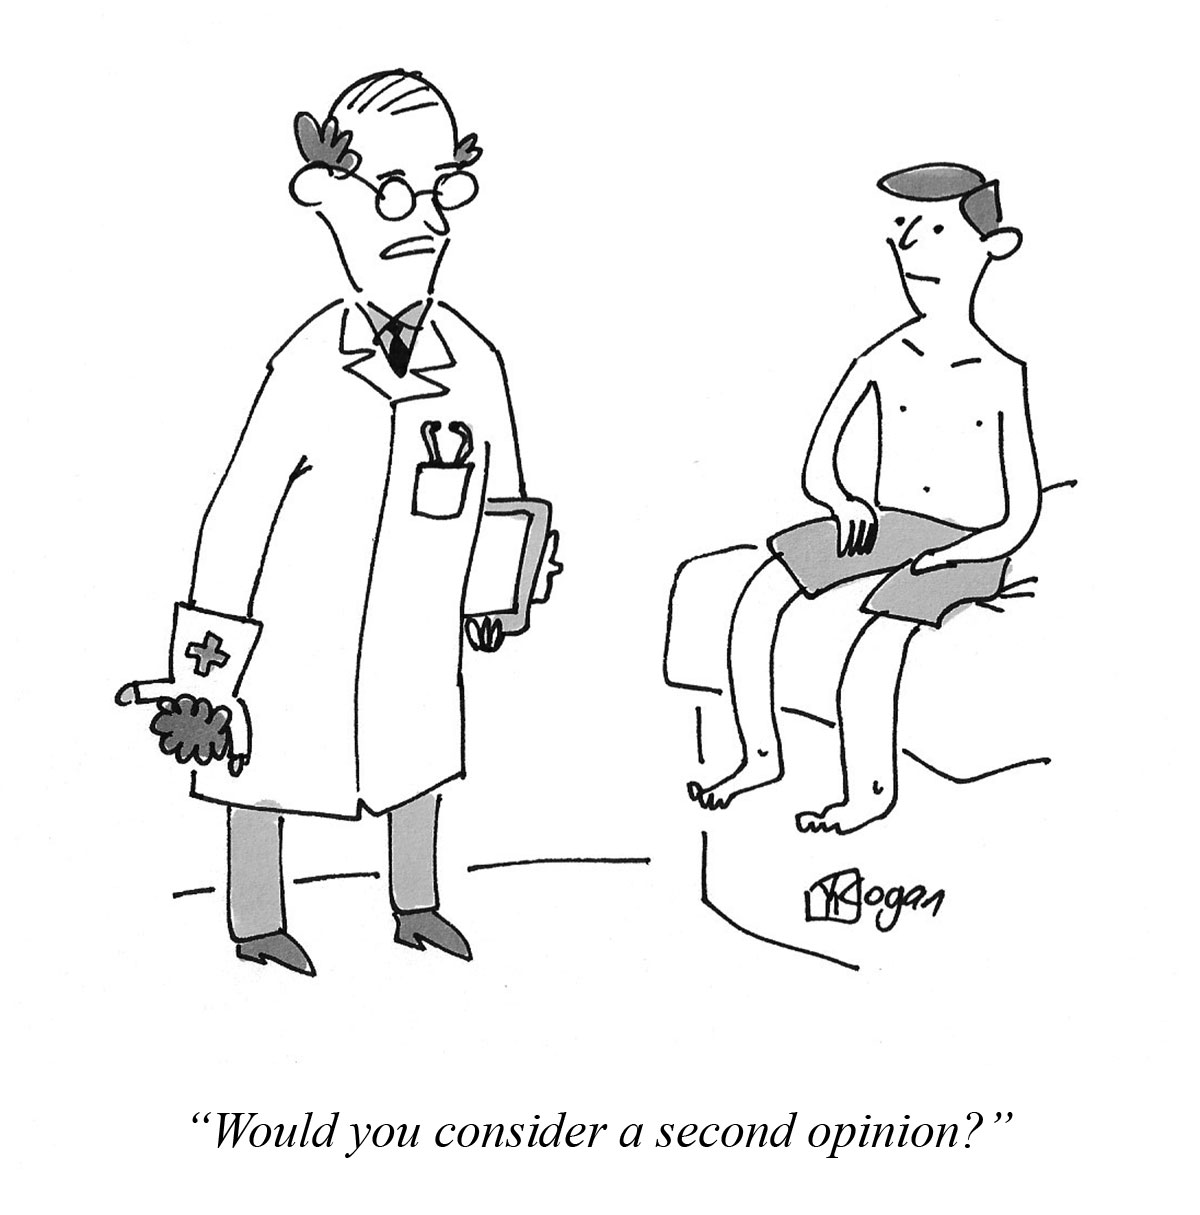 Cartoon about a second opinion.